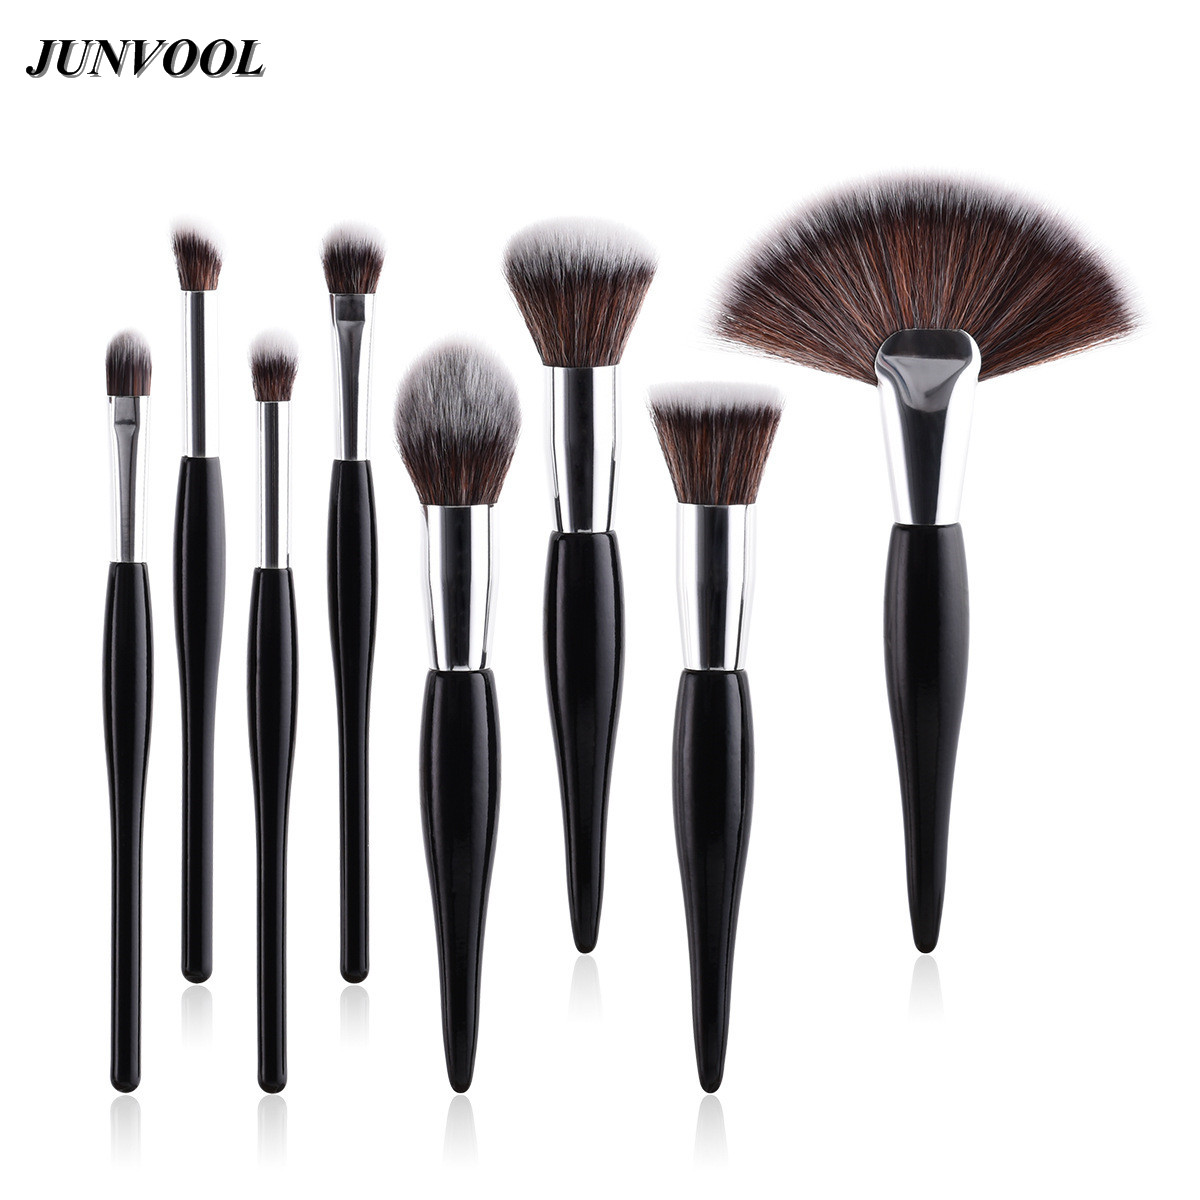 8Pcs/Set Professional Flame Makeup Brushes Black Silver Handle Concealer Eye Shadow Eyebrow Make Up Large Brush Cosmetic Tools shadow of the flame